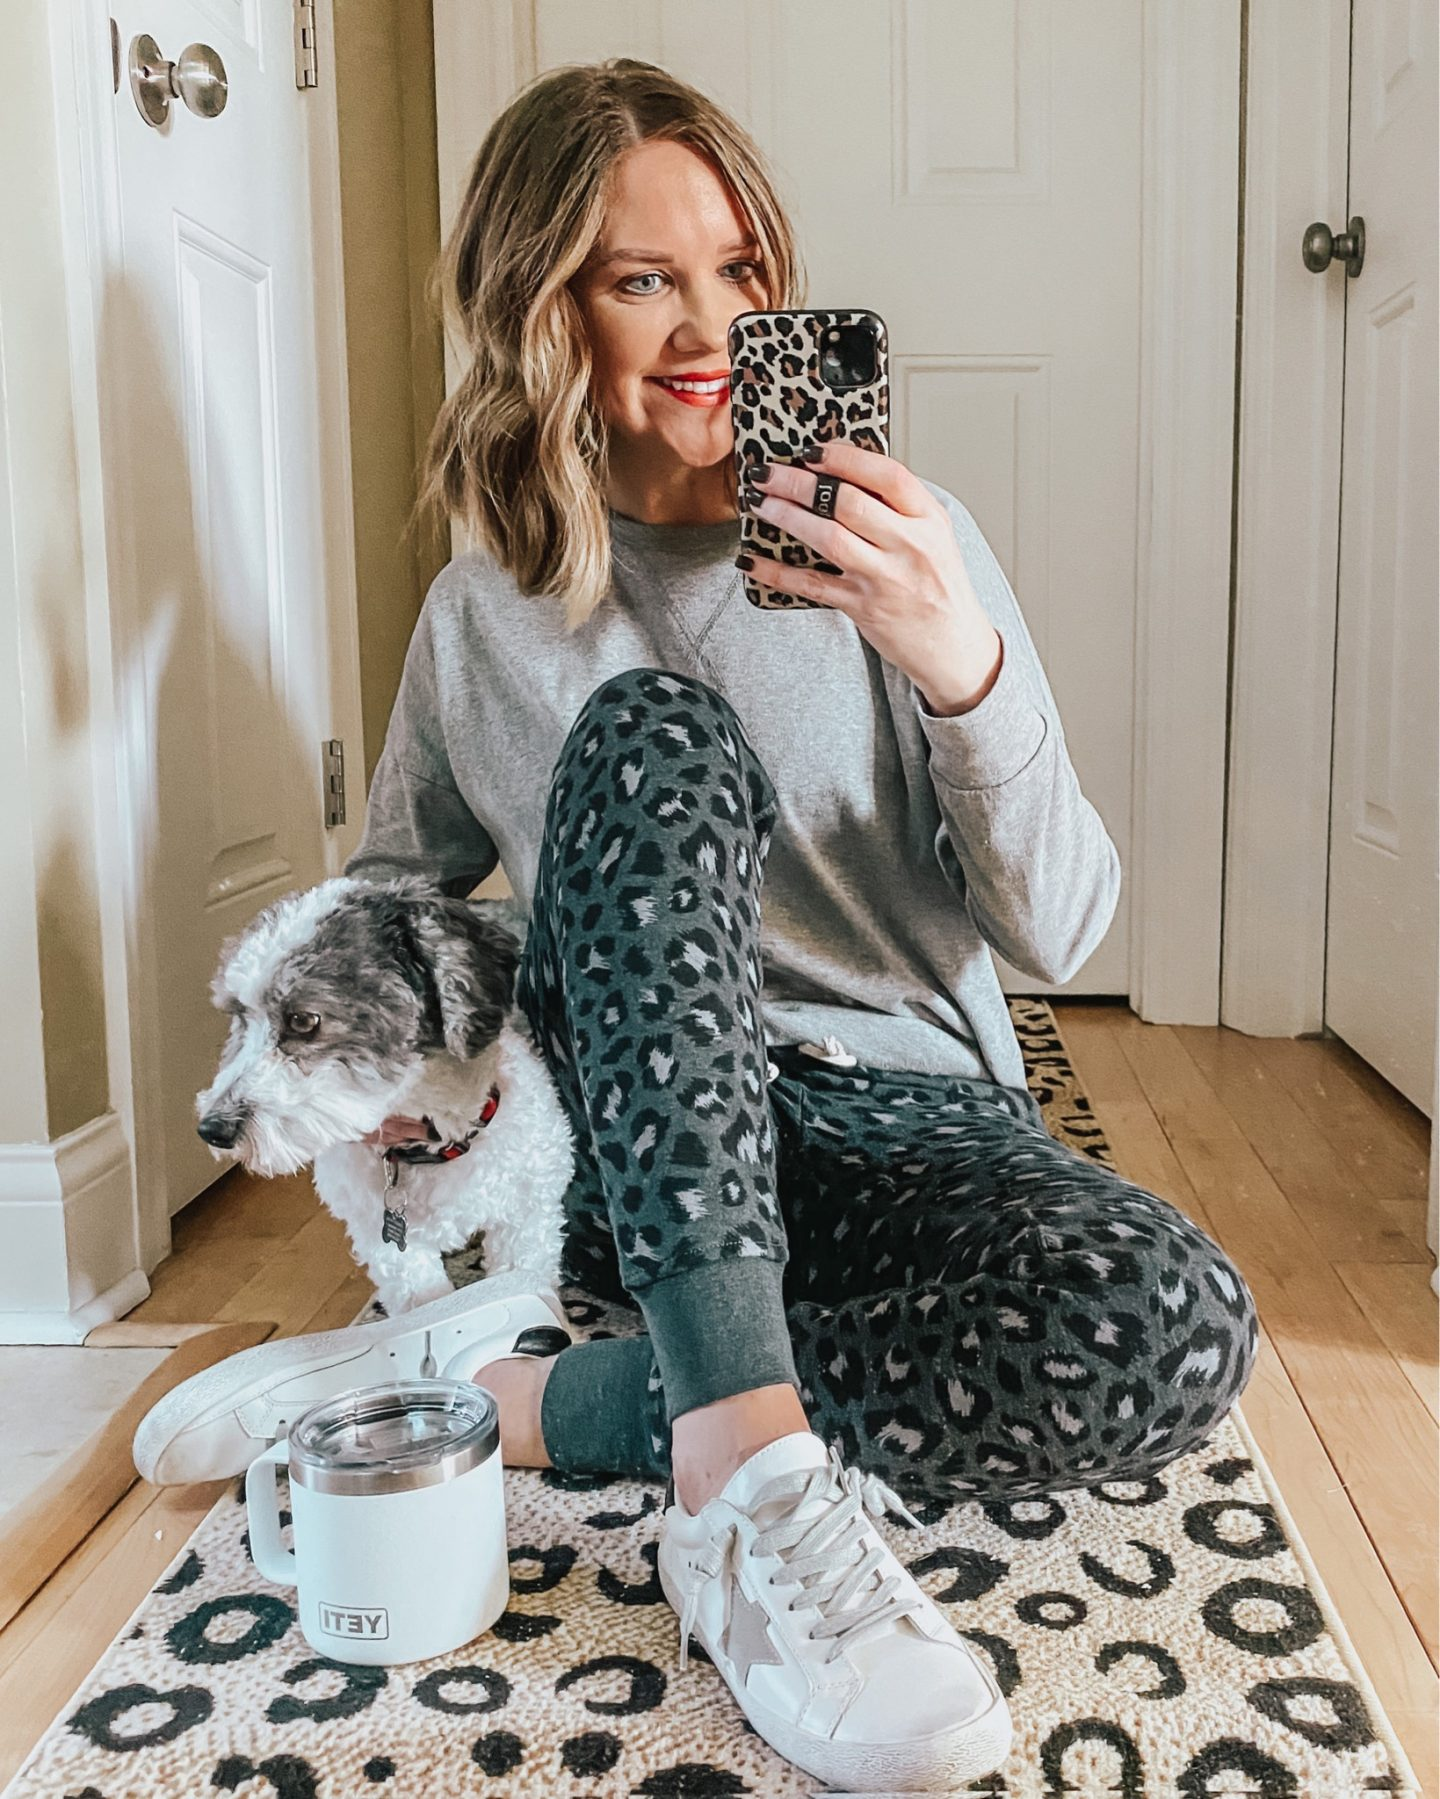 Amazon fashion, leopard joggers